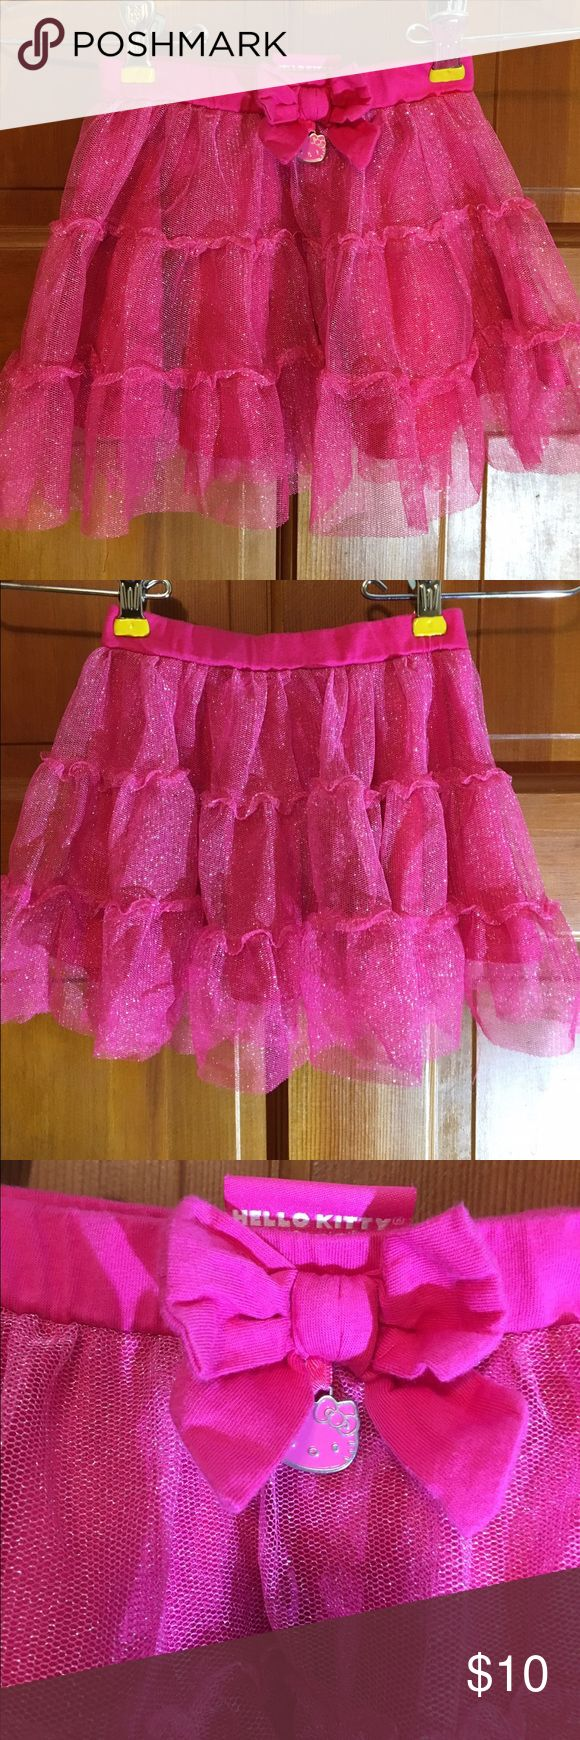 Hello Kitty Pink tutu skirt size 24 Months Hello Kitty tutu skirt.  Pink chiffon outer with solid pink polyester lining. Cotton waistband embellished with a bow and Hello Kitty charm. Cute with leggings under but long enough to wear alone. Size 24 months. Wash inside out, cold, gentle cycle. Tumble dry low. EUC. Hello Kitty Bottoms Skirts